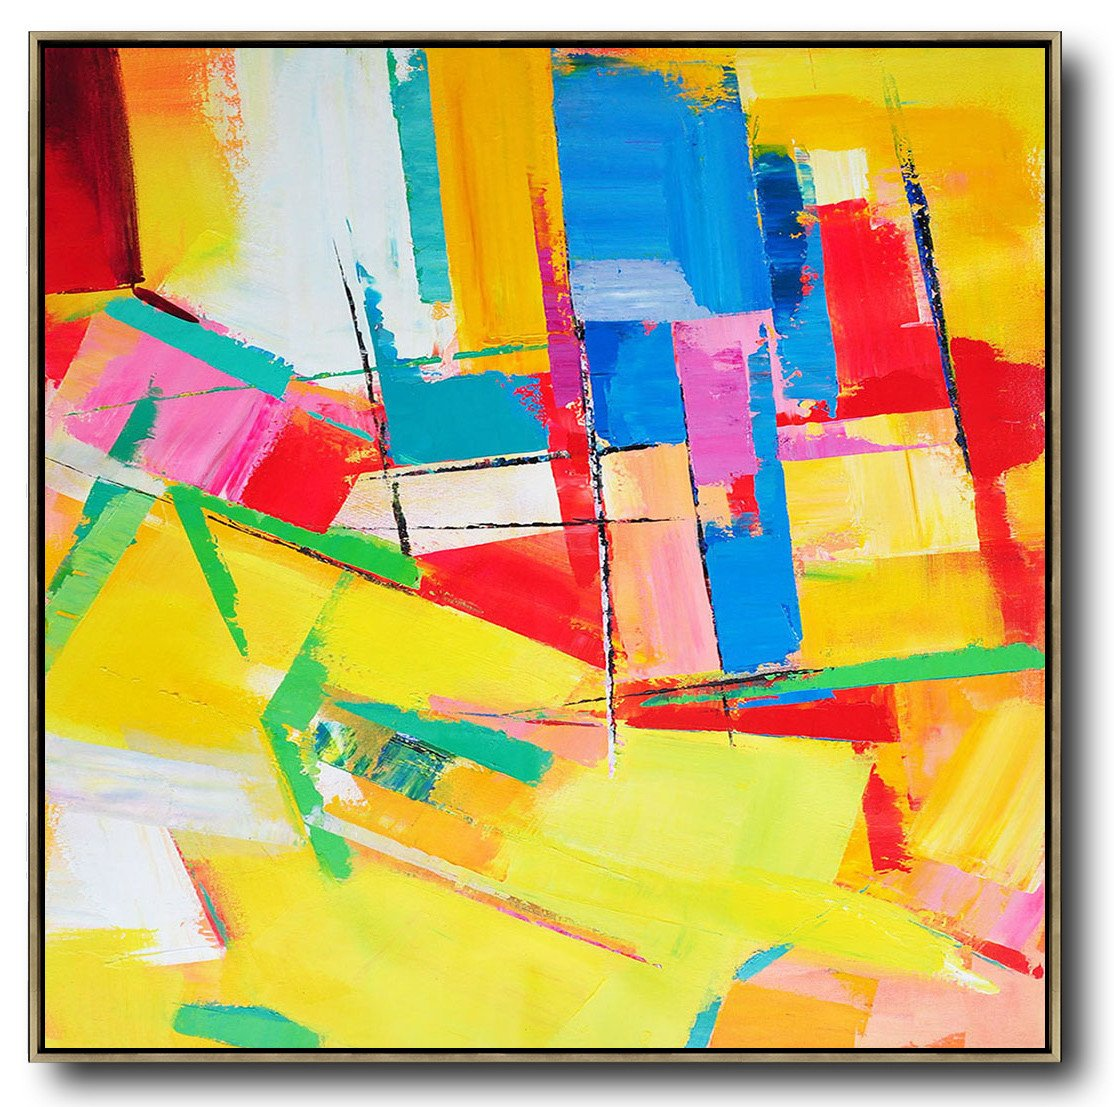 Extra Large Canvas Art,Oversized Palette Knife Painting Contemporary Art On Canvas,Huge Wall Decor,Yellow,Red,Blue,Pink,Light Green.etc